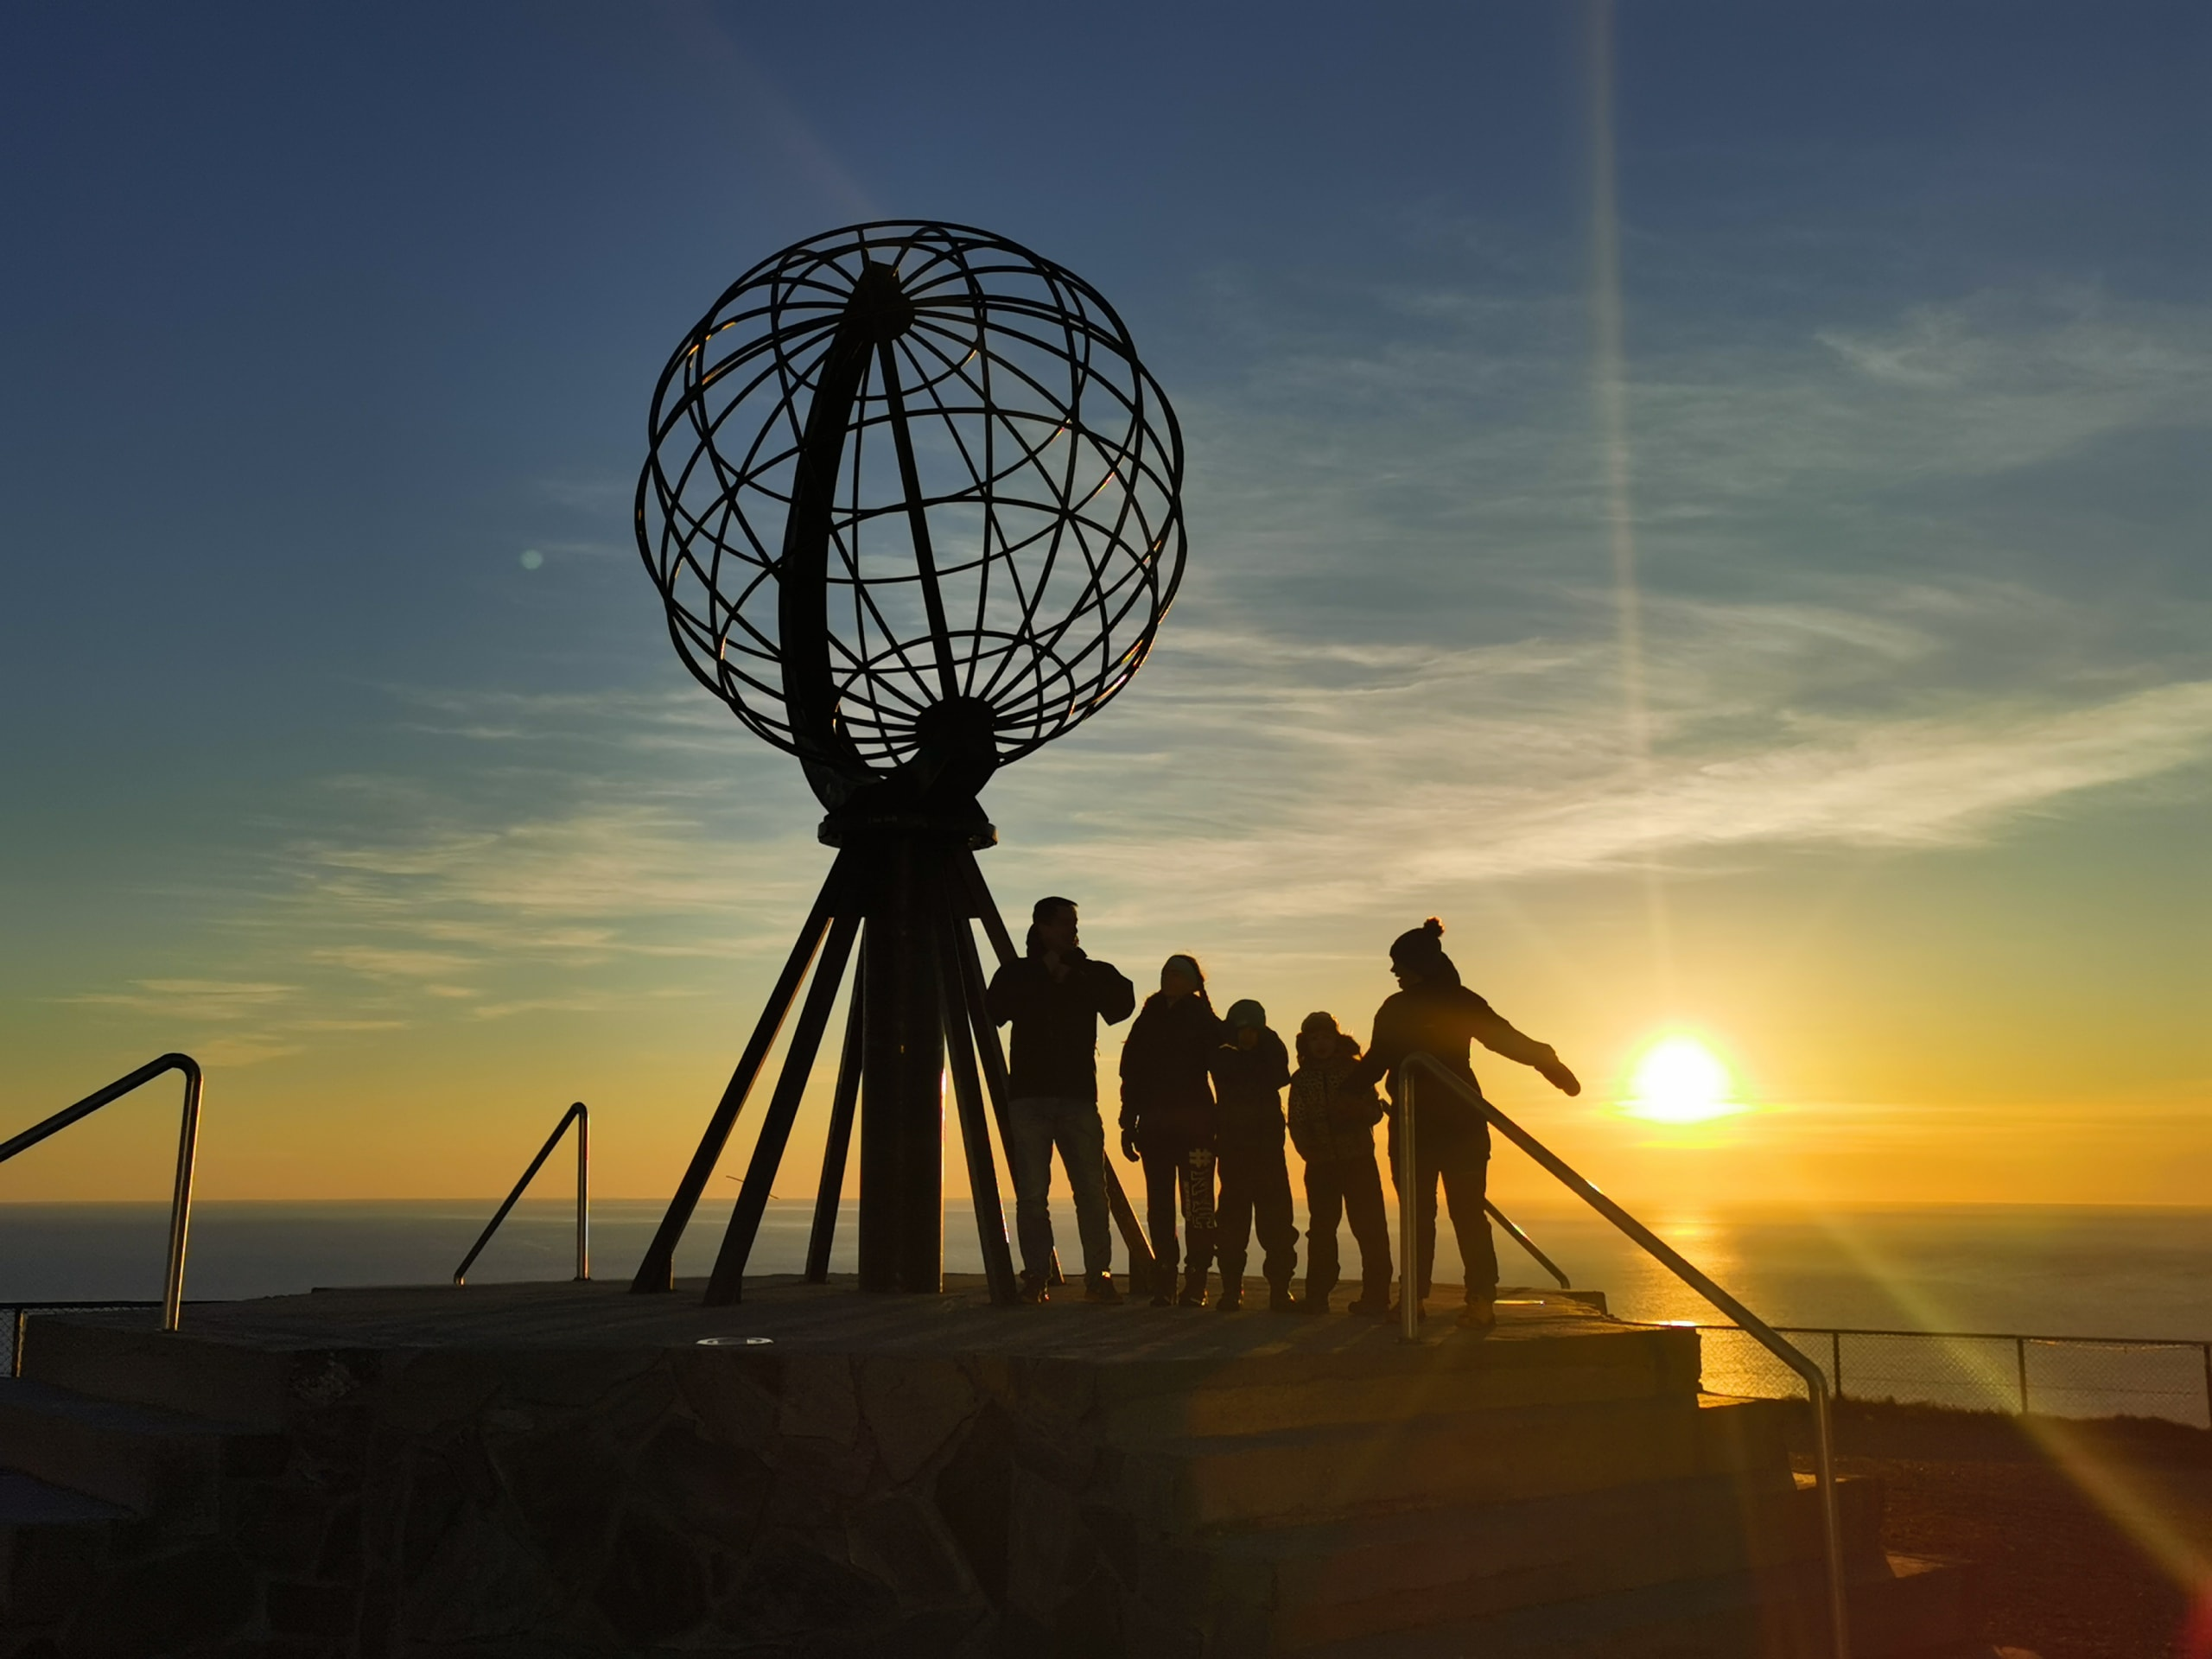 Midnight sun at the North Cape